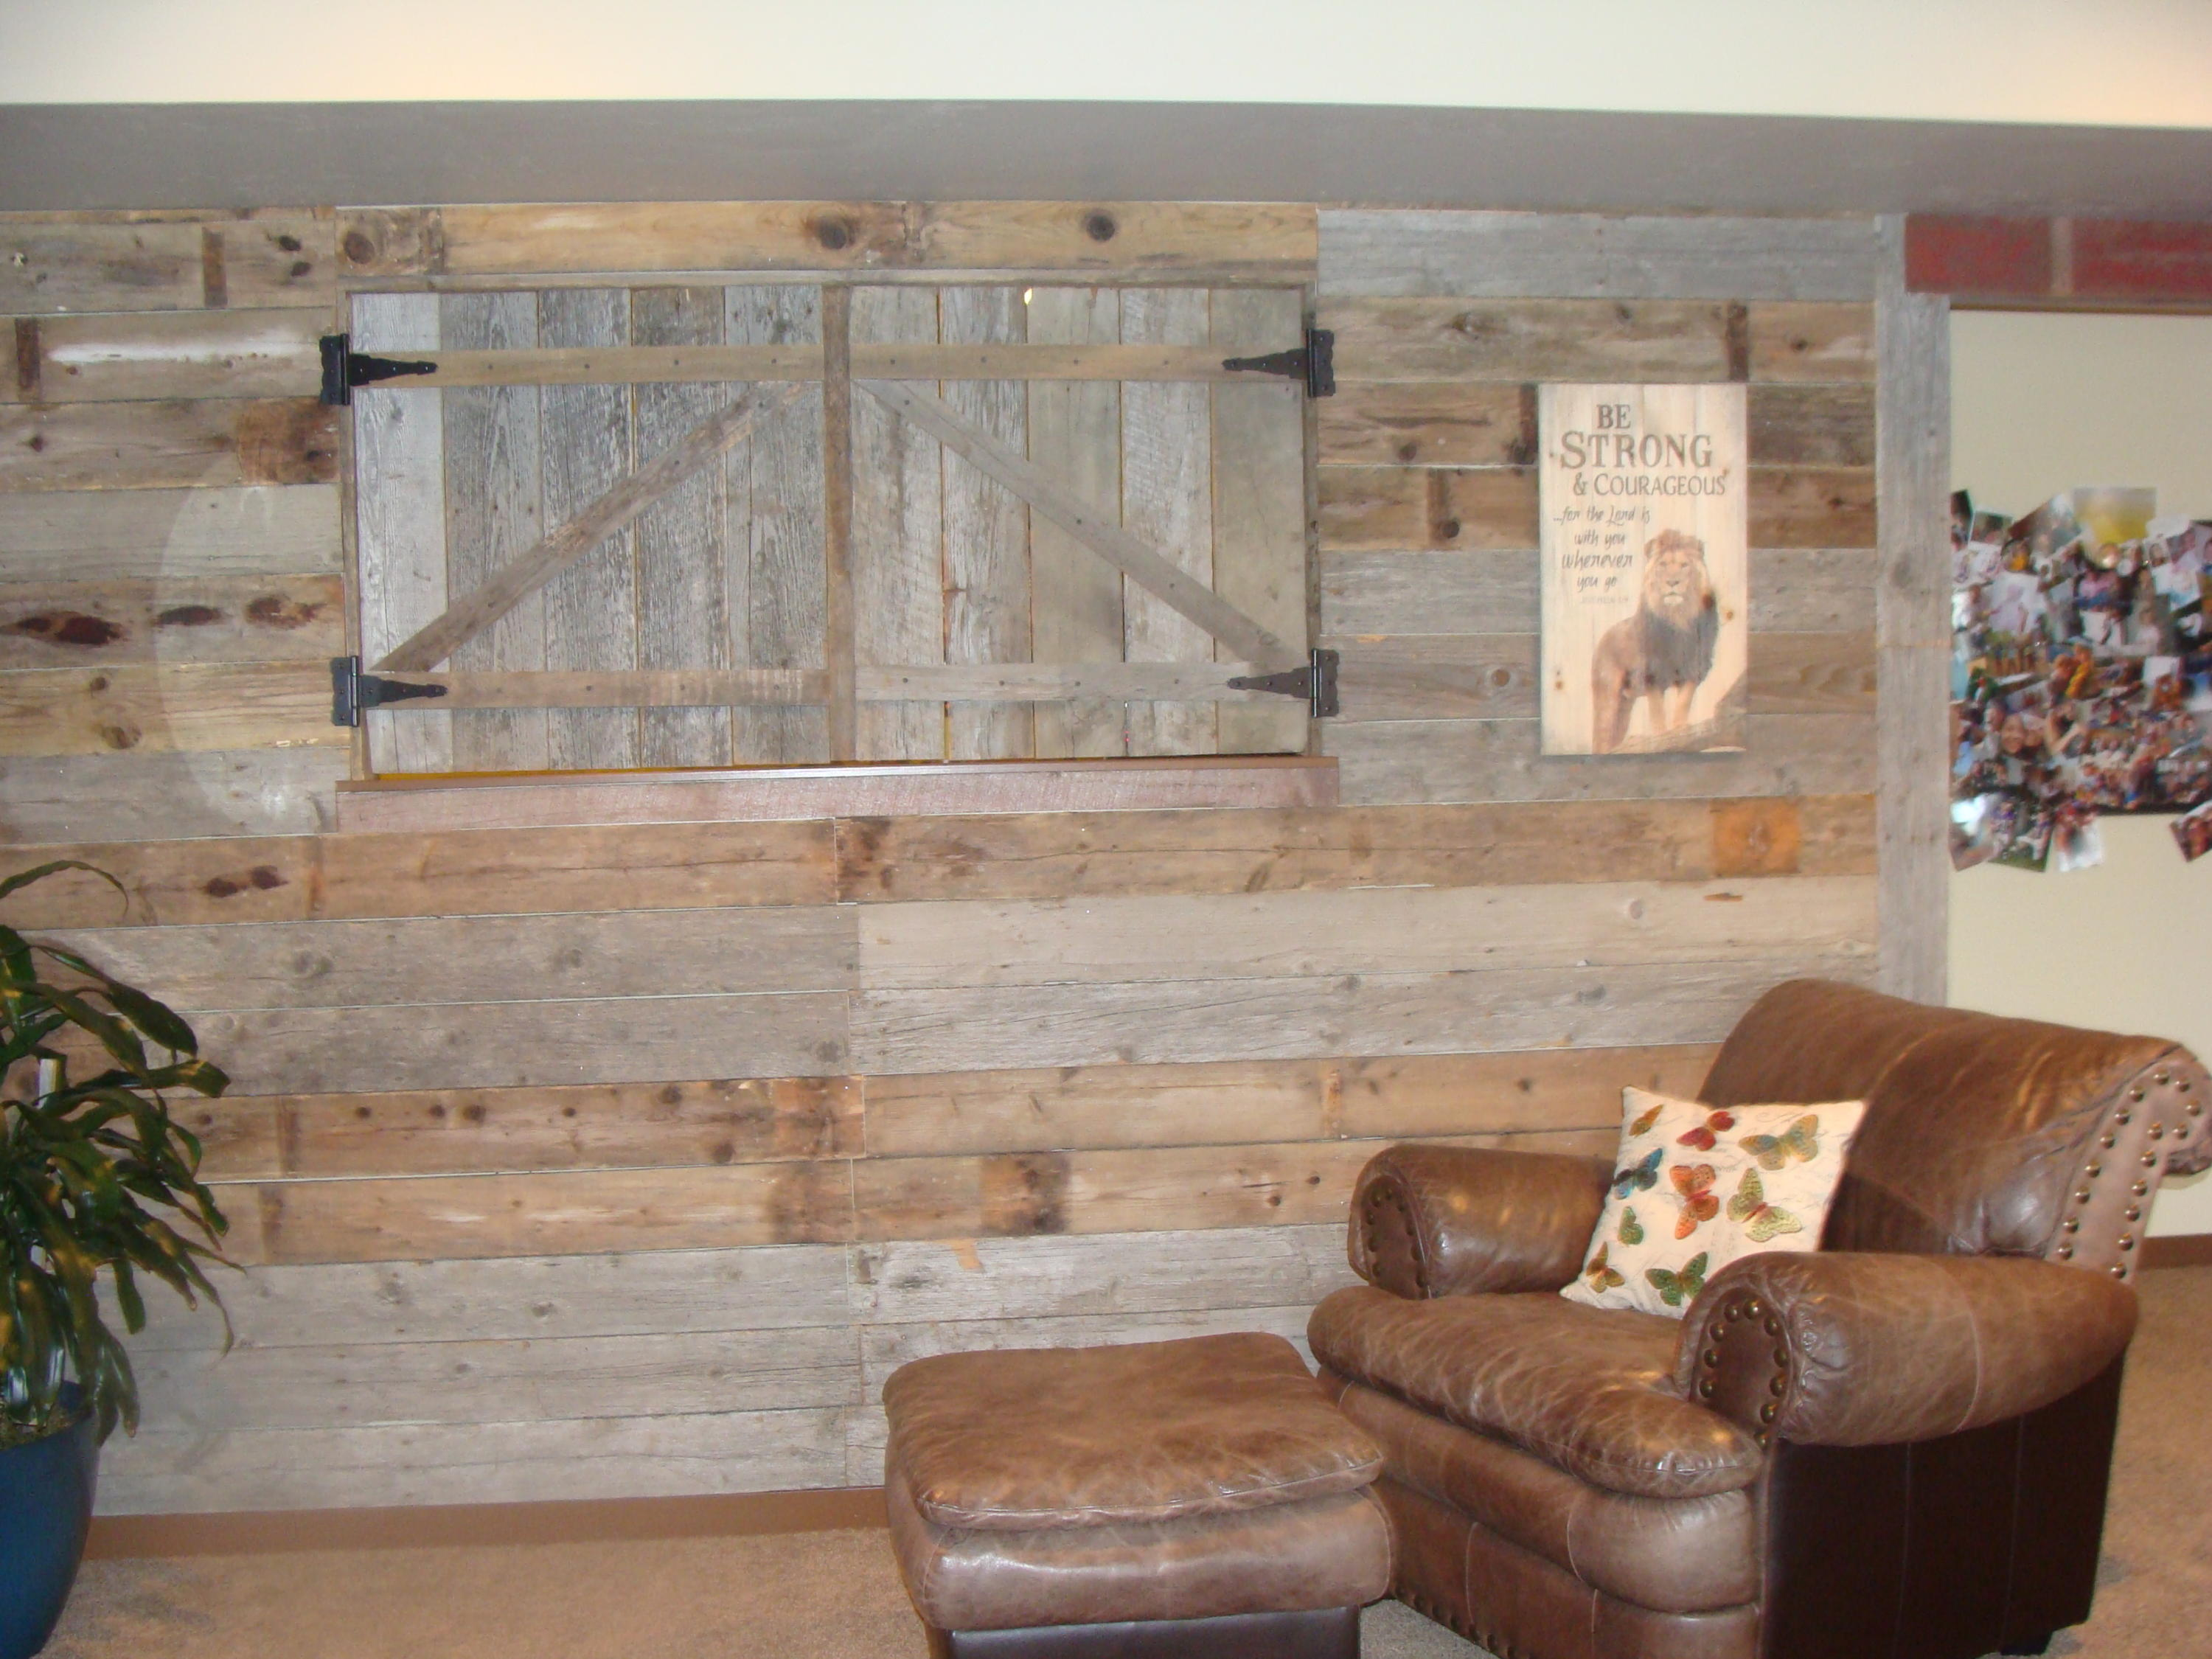 another view of barnwood wall